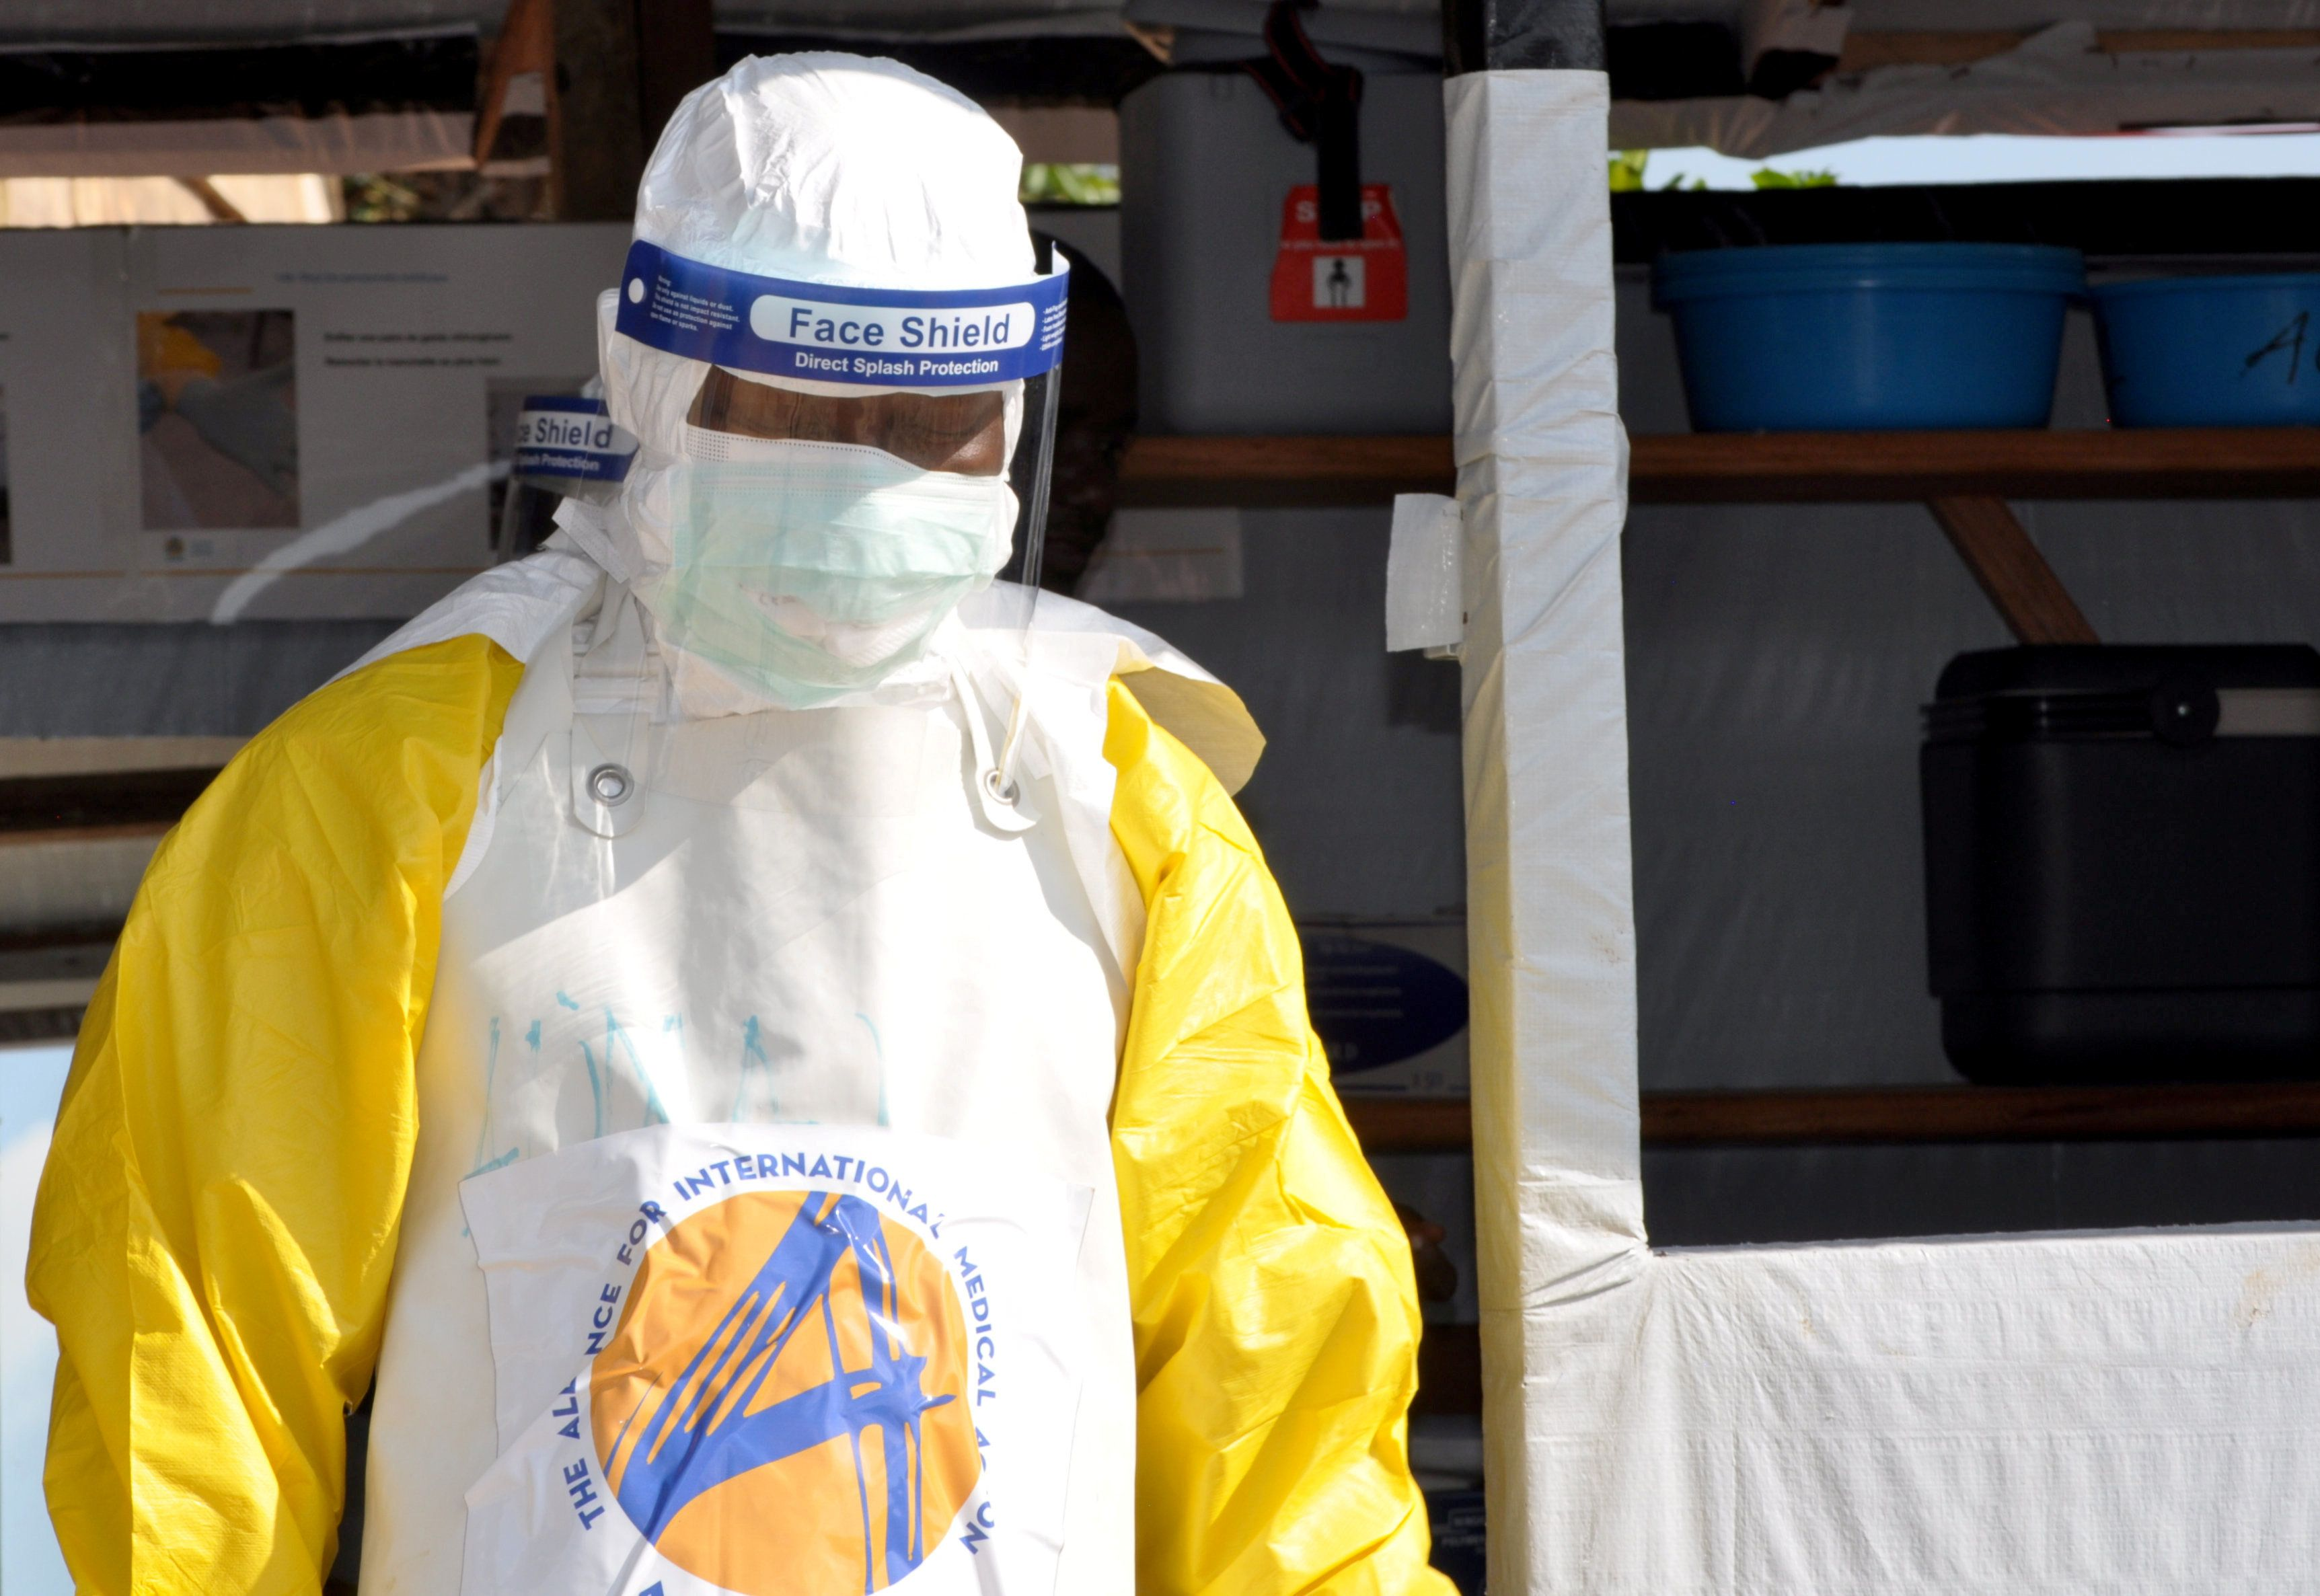 A medical worker wears a protective suit as he prepares to administer Ebola patient care at The Alliance for International Medical Action (ALIMA) treatment center in Beni, North Kivu province of the Democratic Republic of Congo September 6, 2018. Picture taken September 6, 2018. REUTERS/Fiston Mahamba